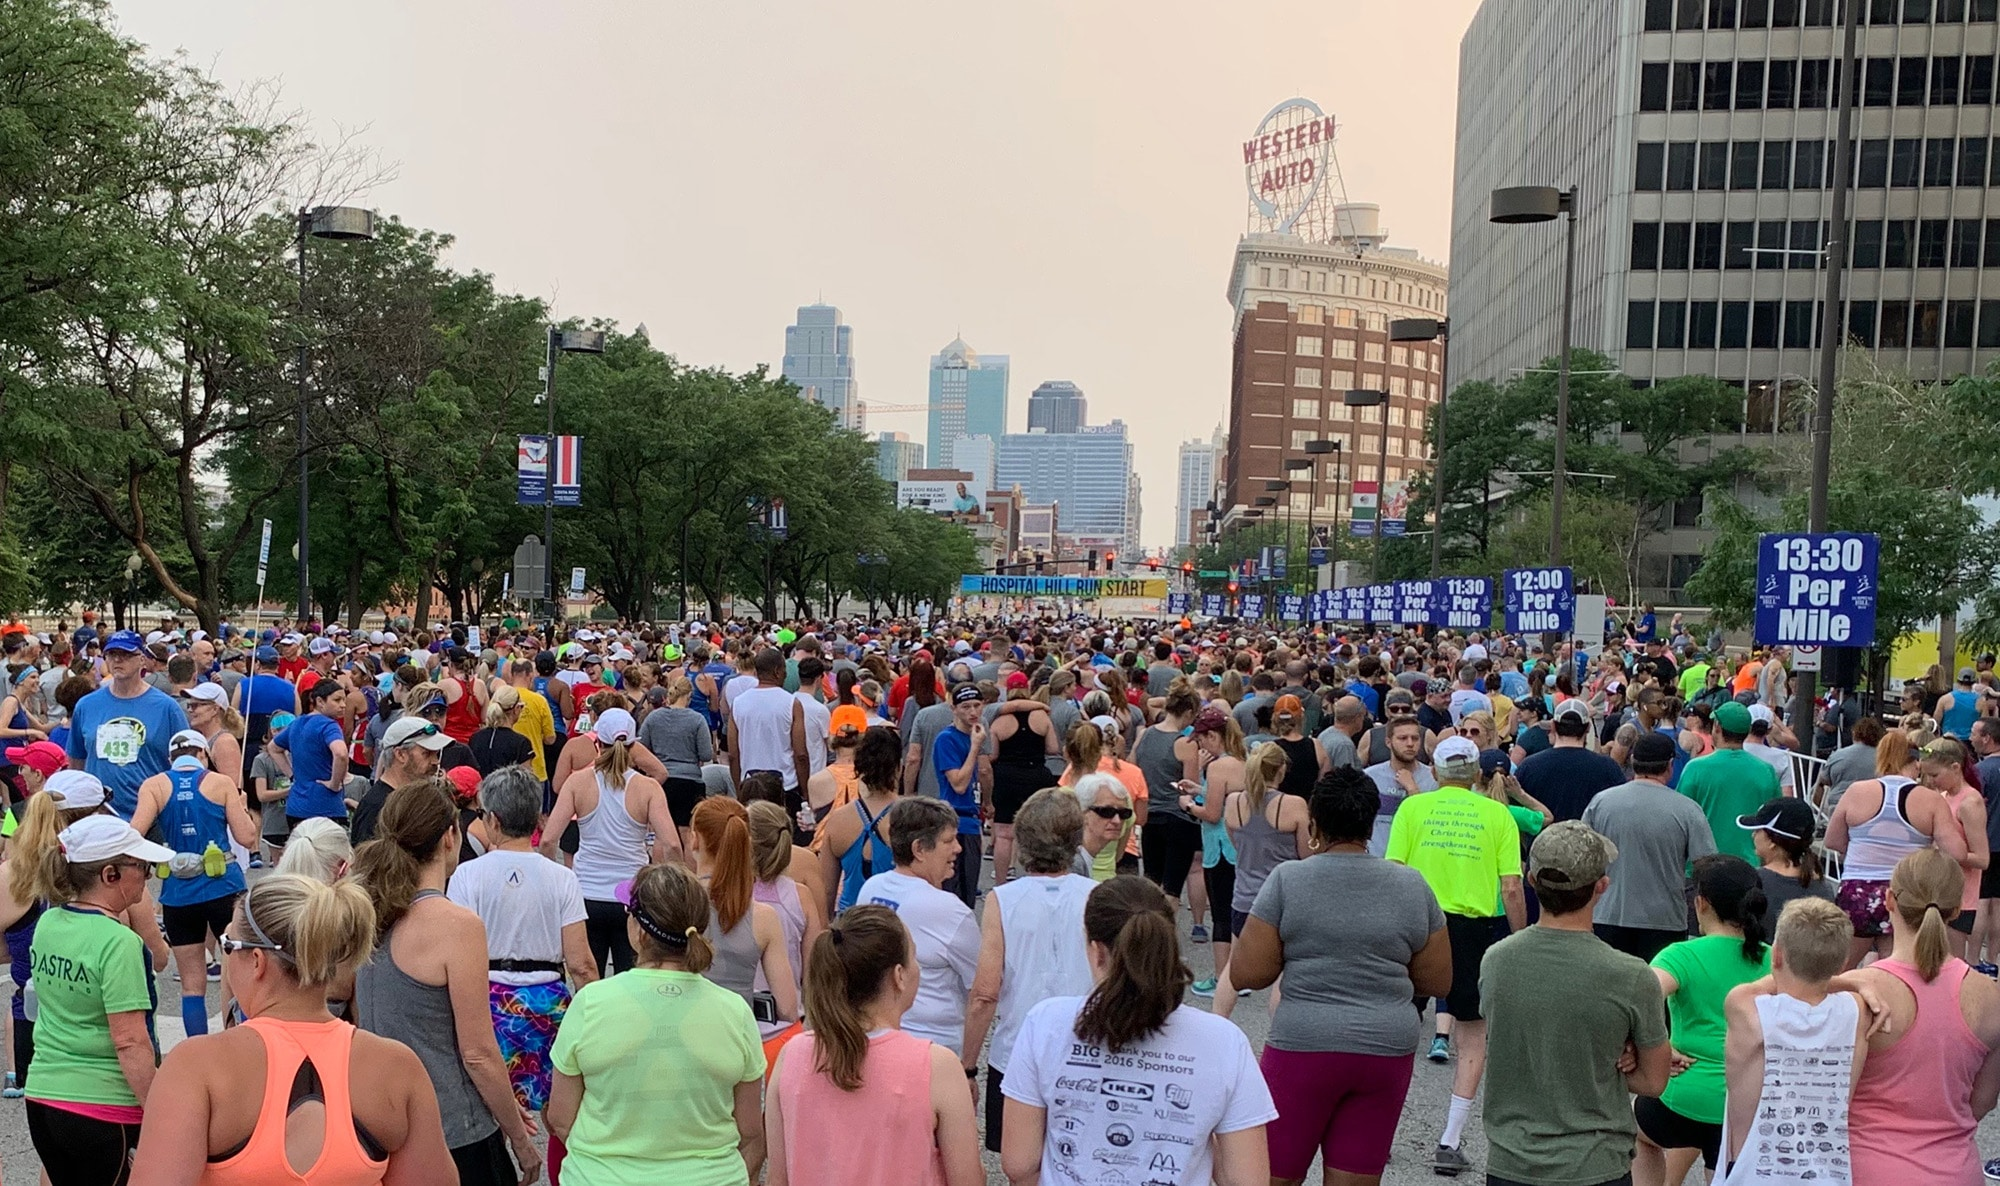 kansas-city-group-run-the-starting-line-of-a-large-marathon-race